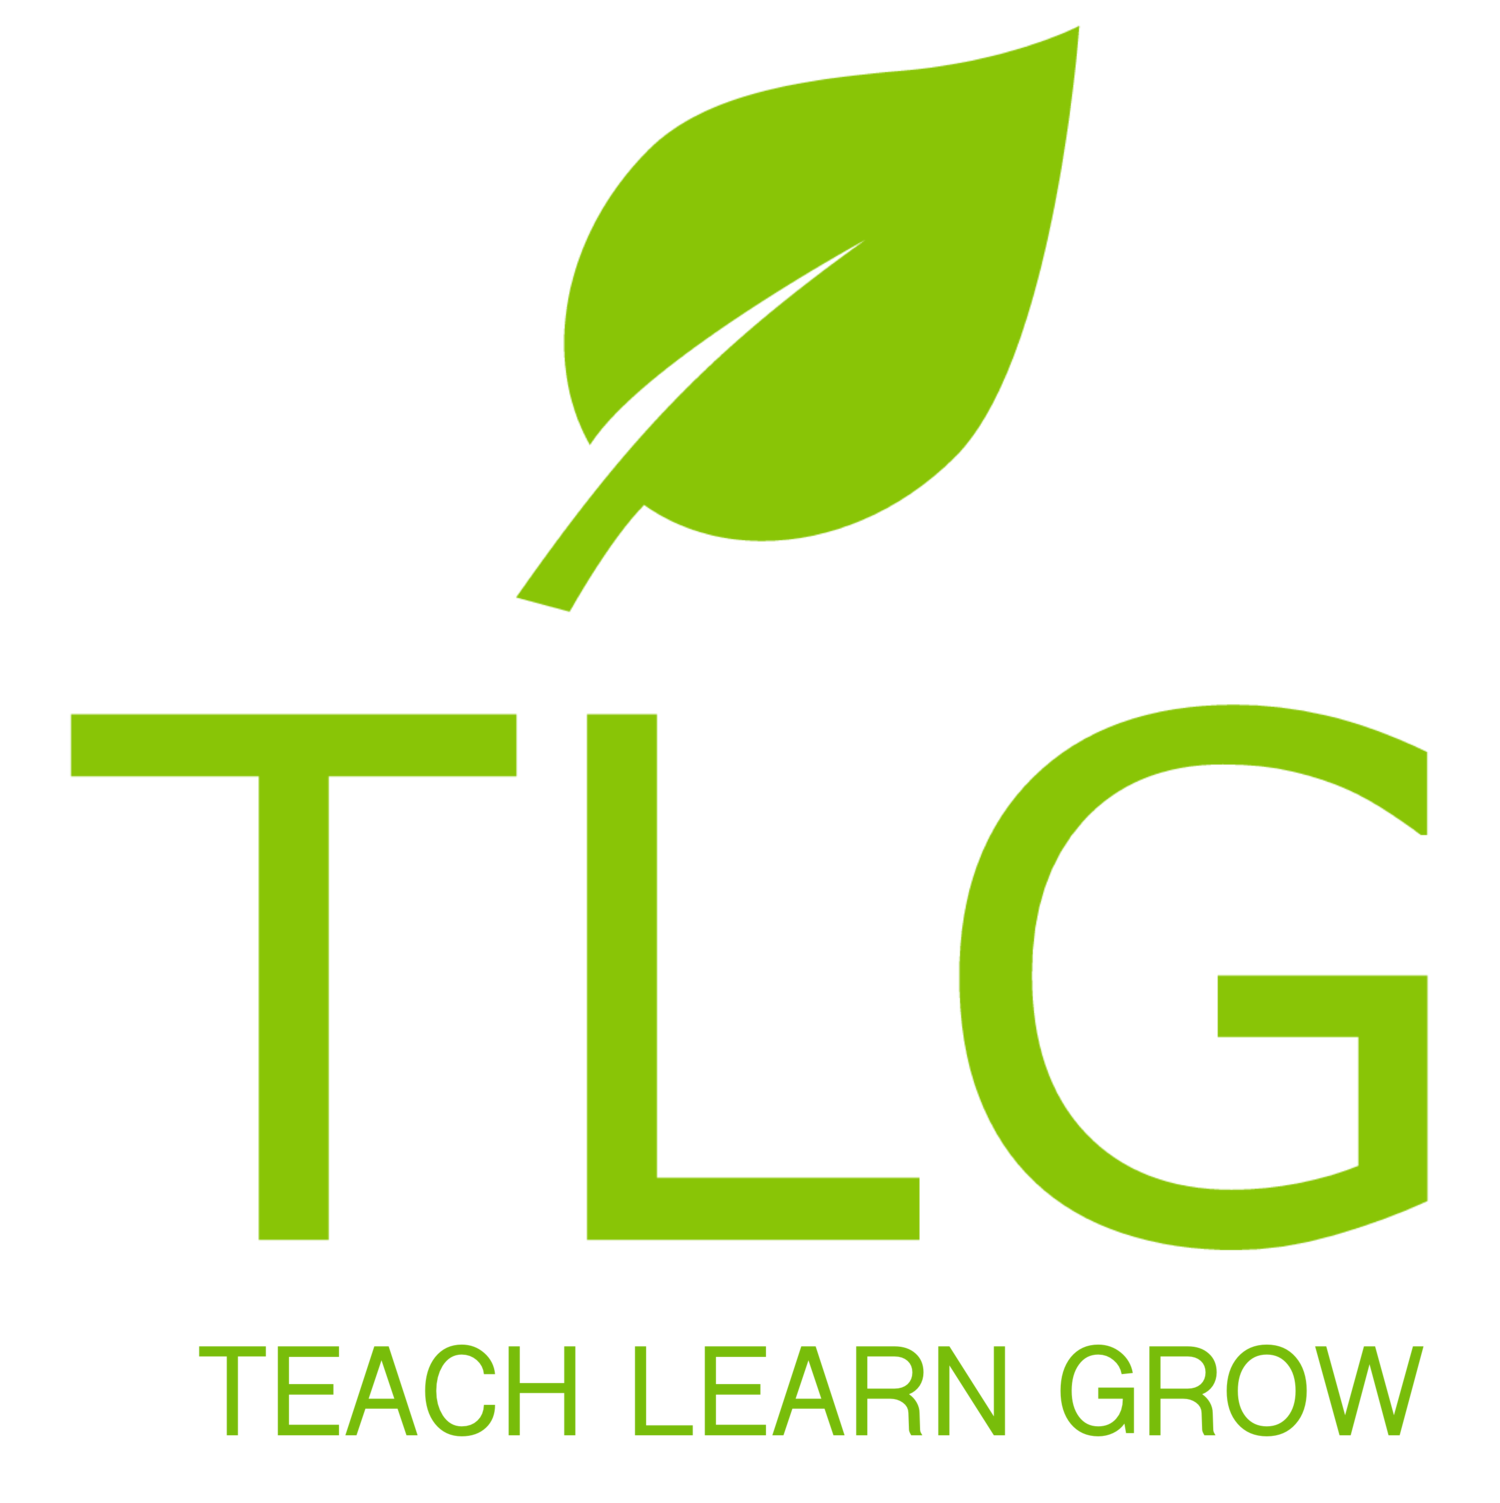 Teach Learn Grow